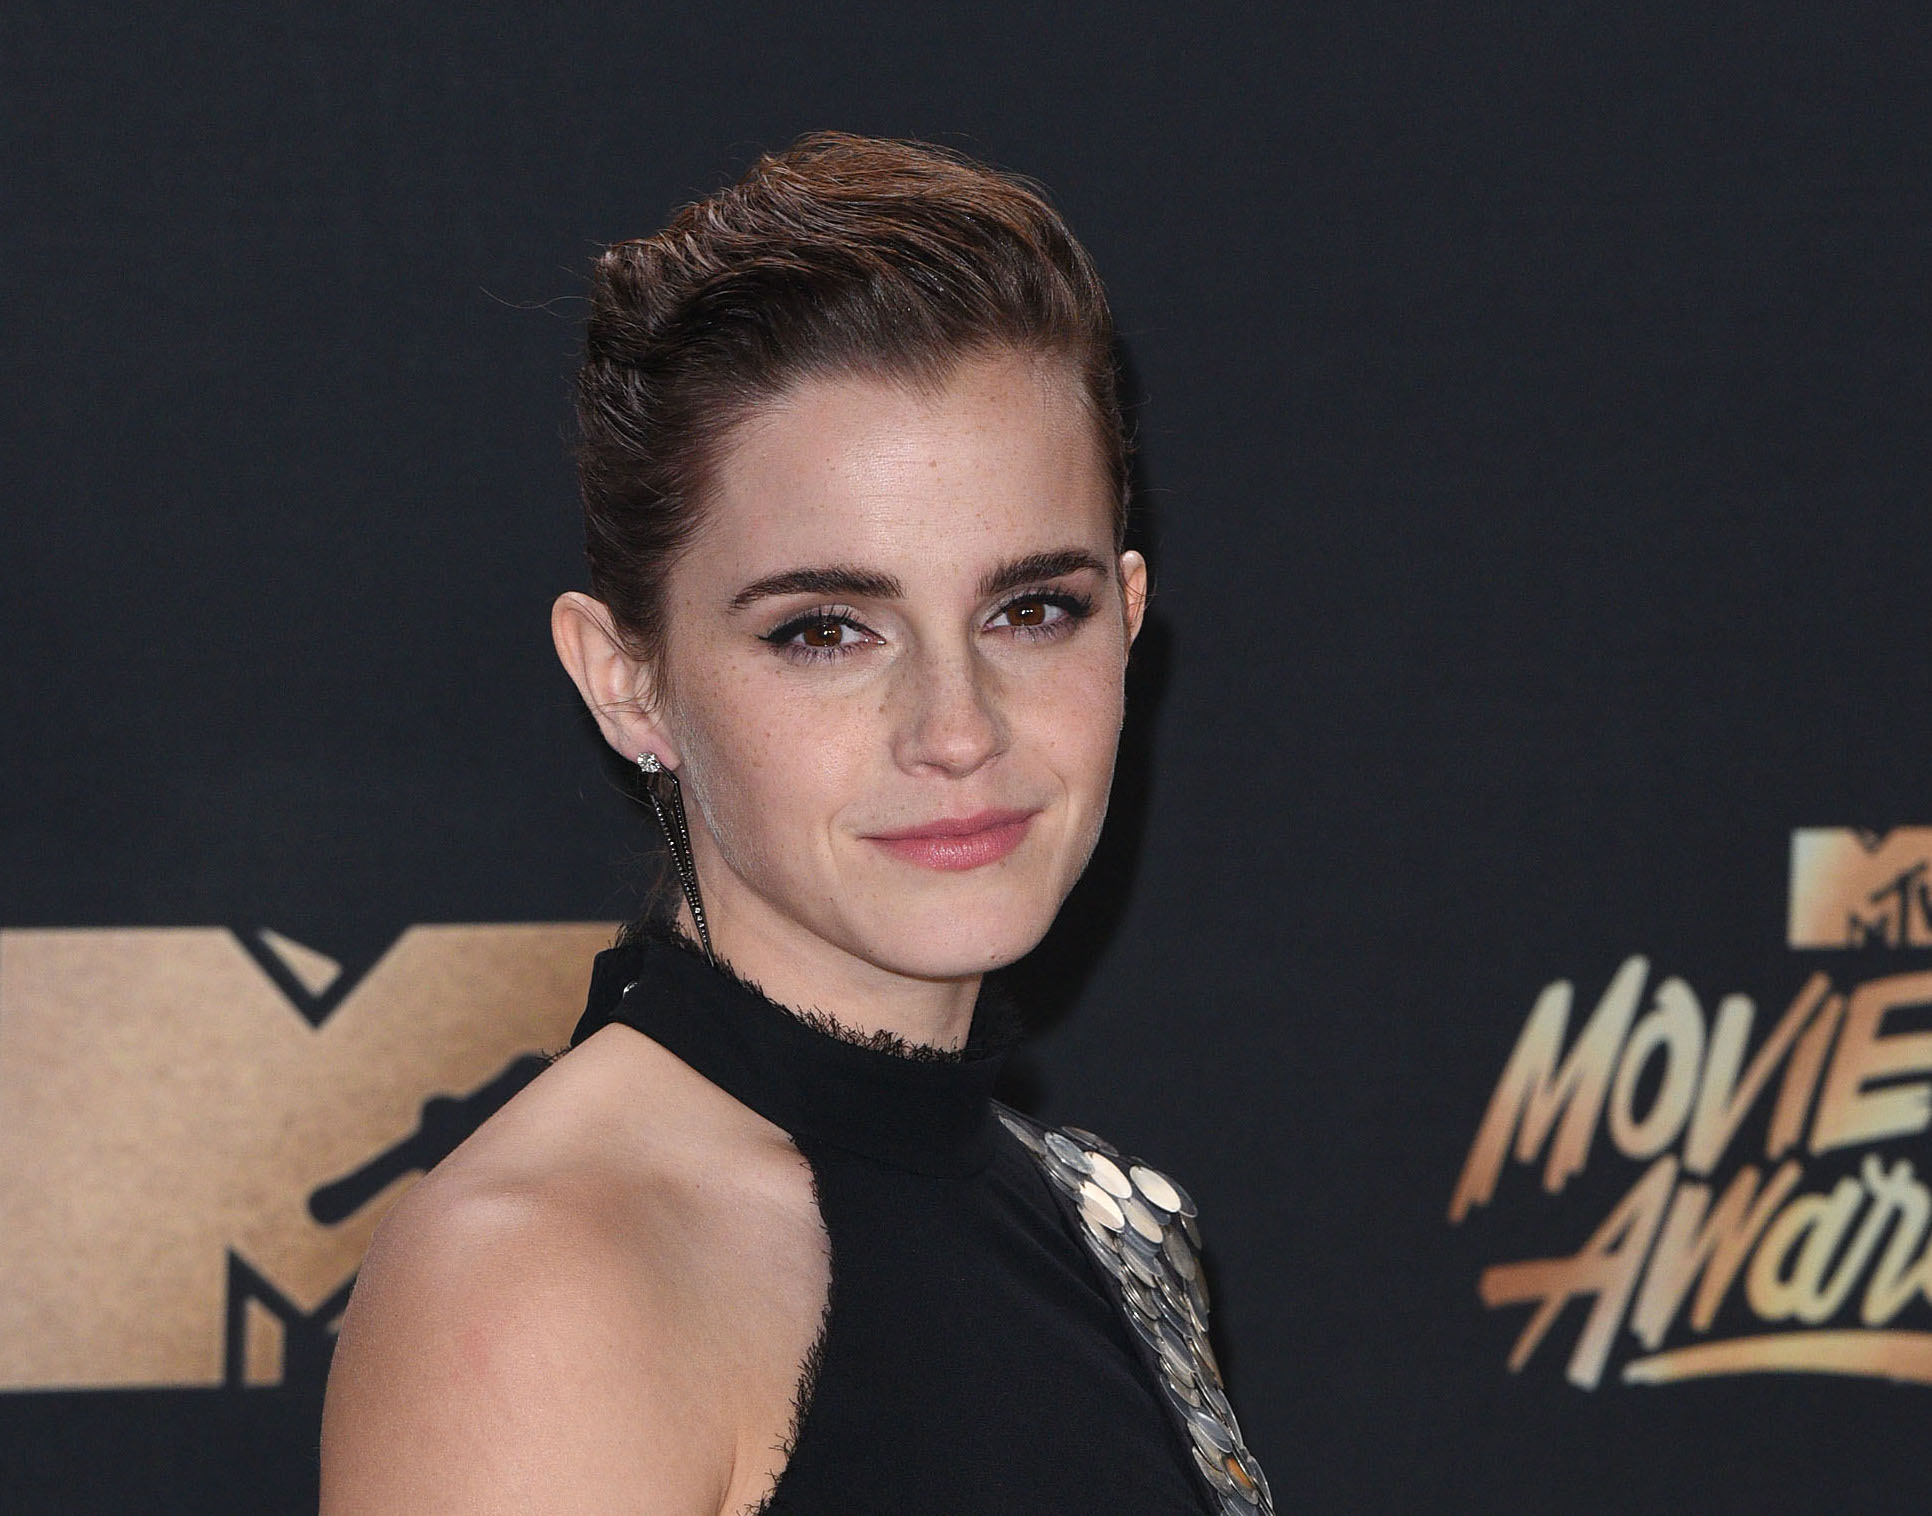 Emma Watson transformed into a goth mermaid at the MTV Movie and TV Awards